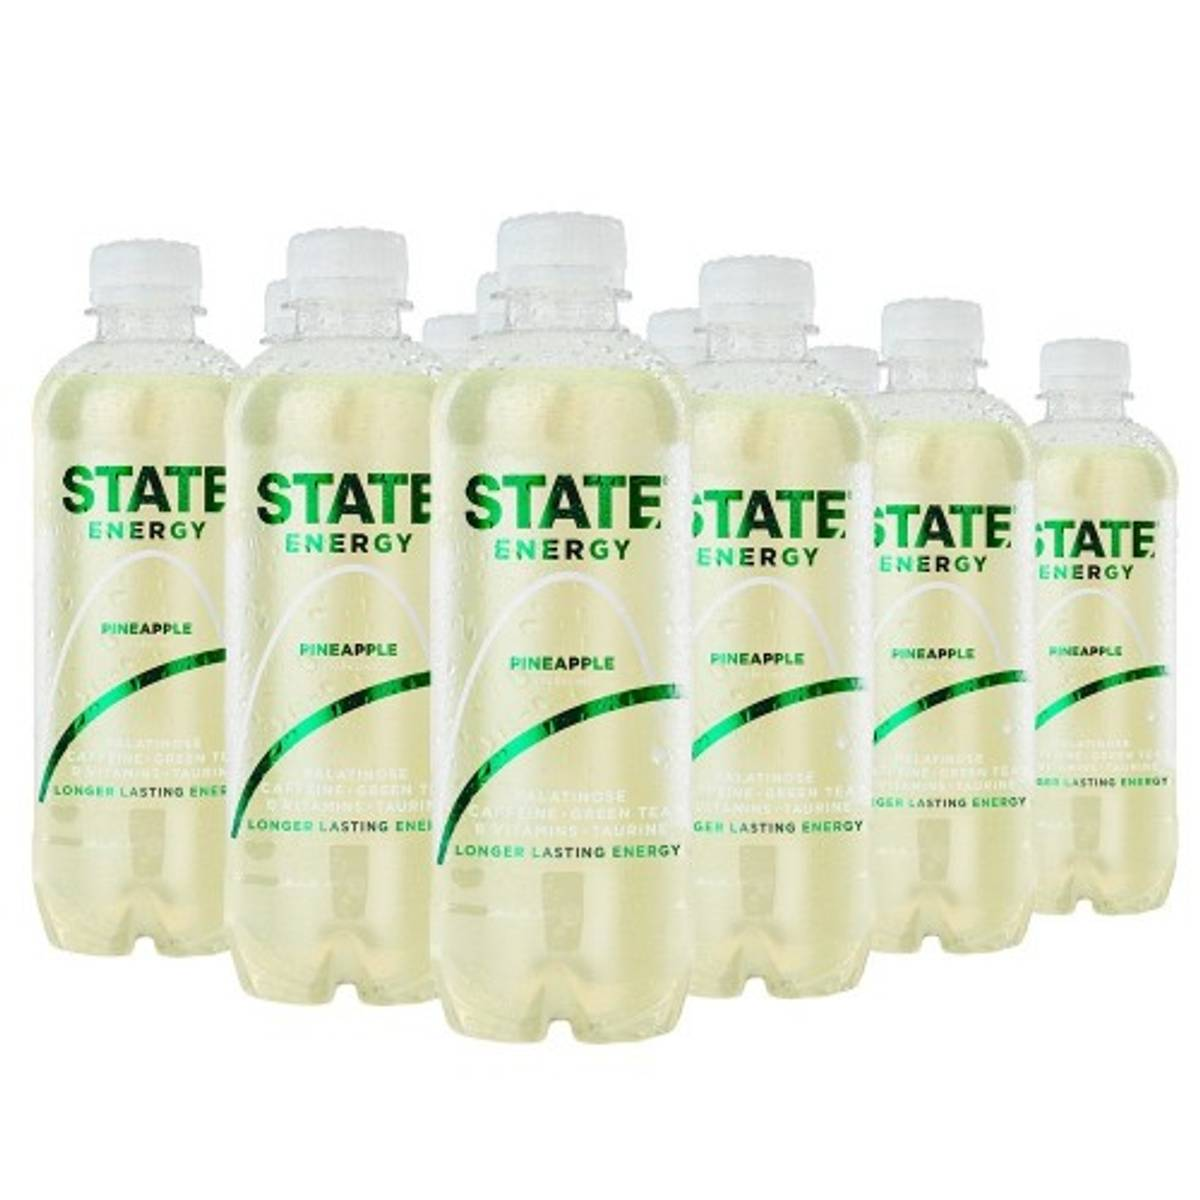 State Energy - Pineapple (12x400ml)